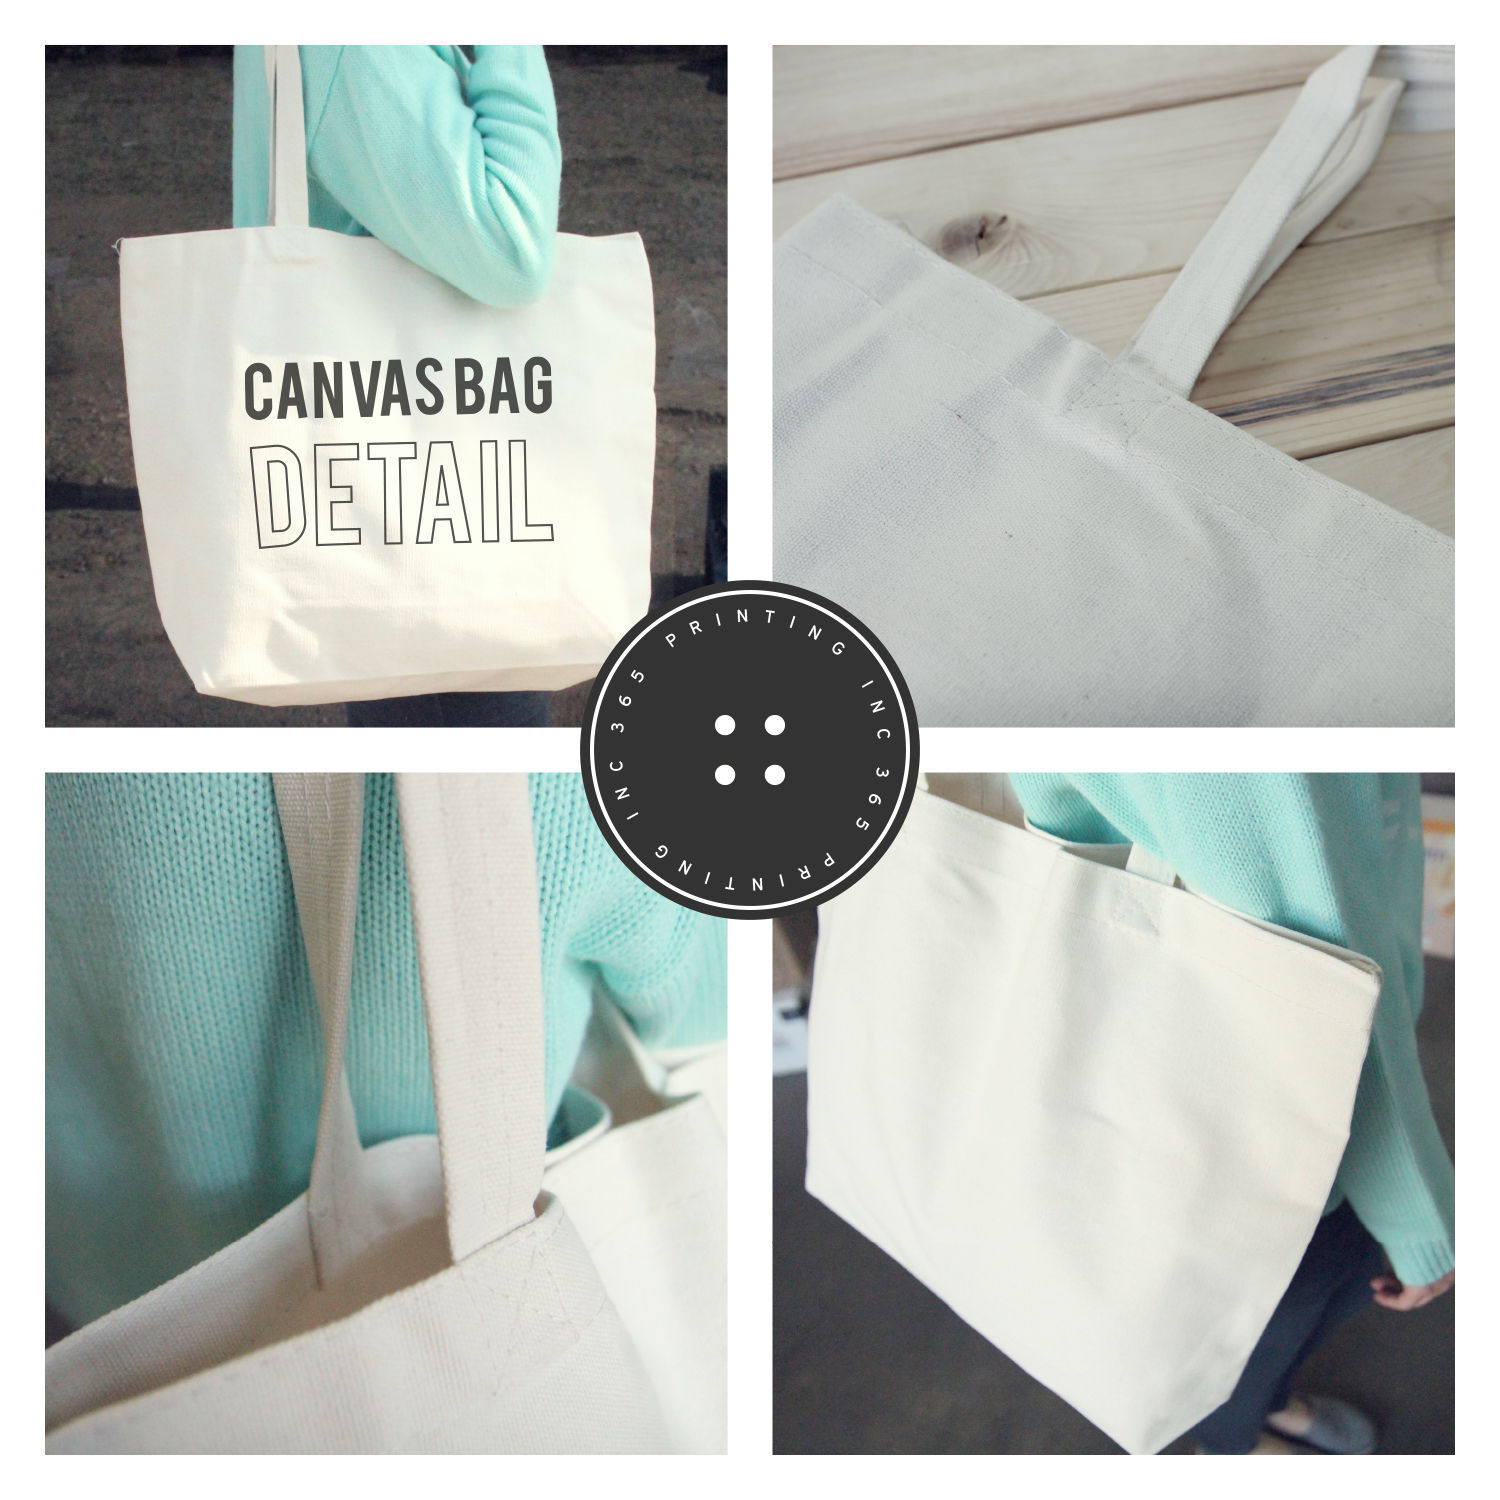 I Need Coffee Canvas Tote Bag - 100% Cotton Eco Bag, Shopping Bag, Book Bag image 2